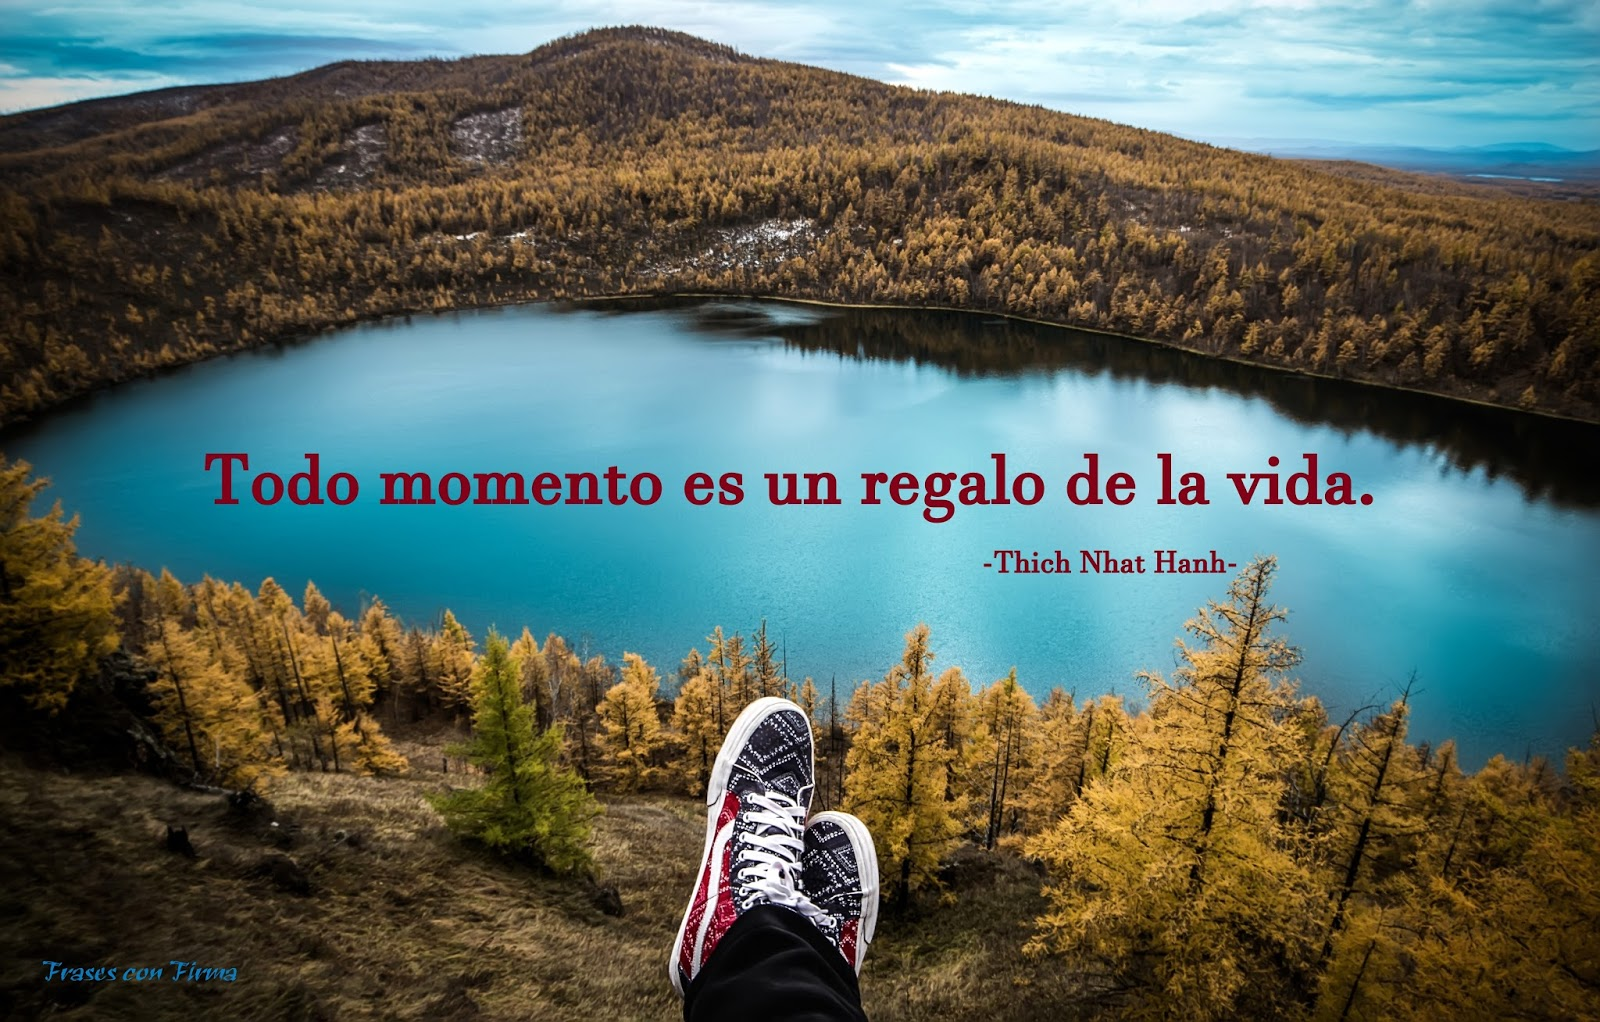 Frases Con Firma Youtube